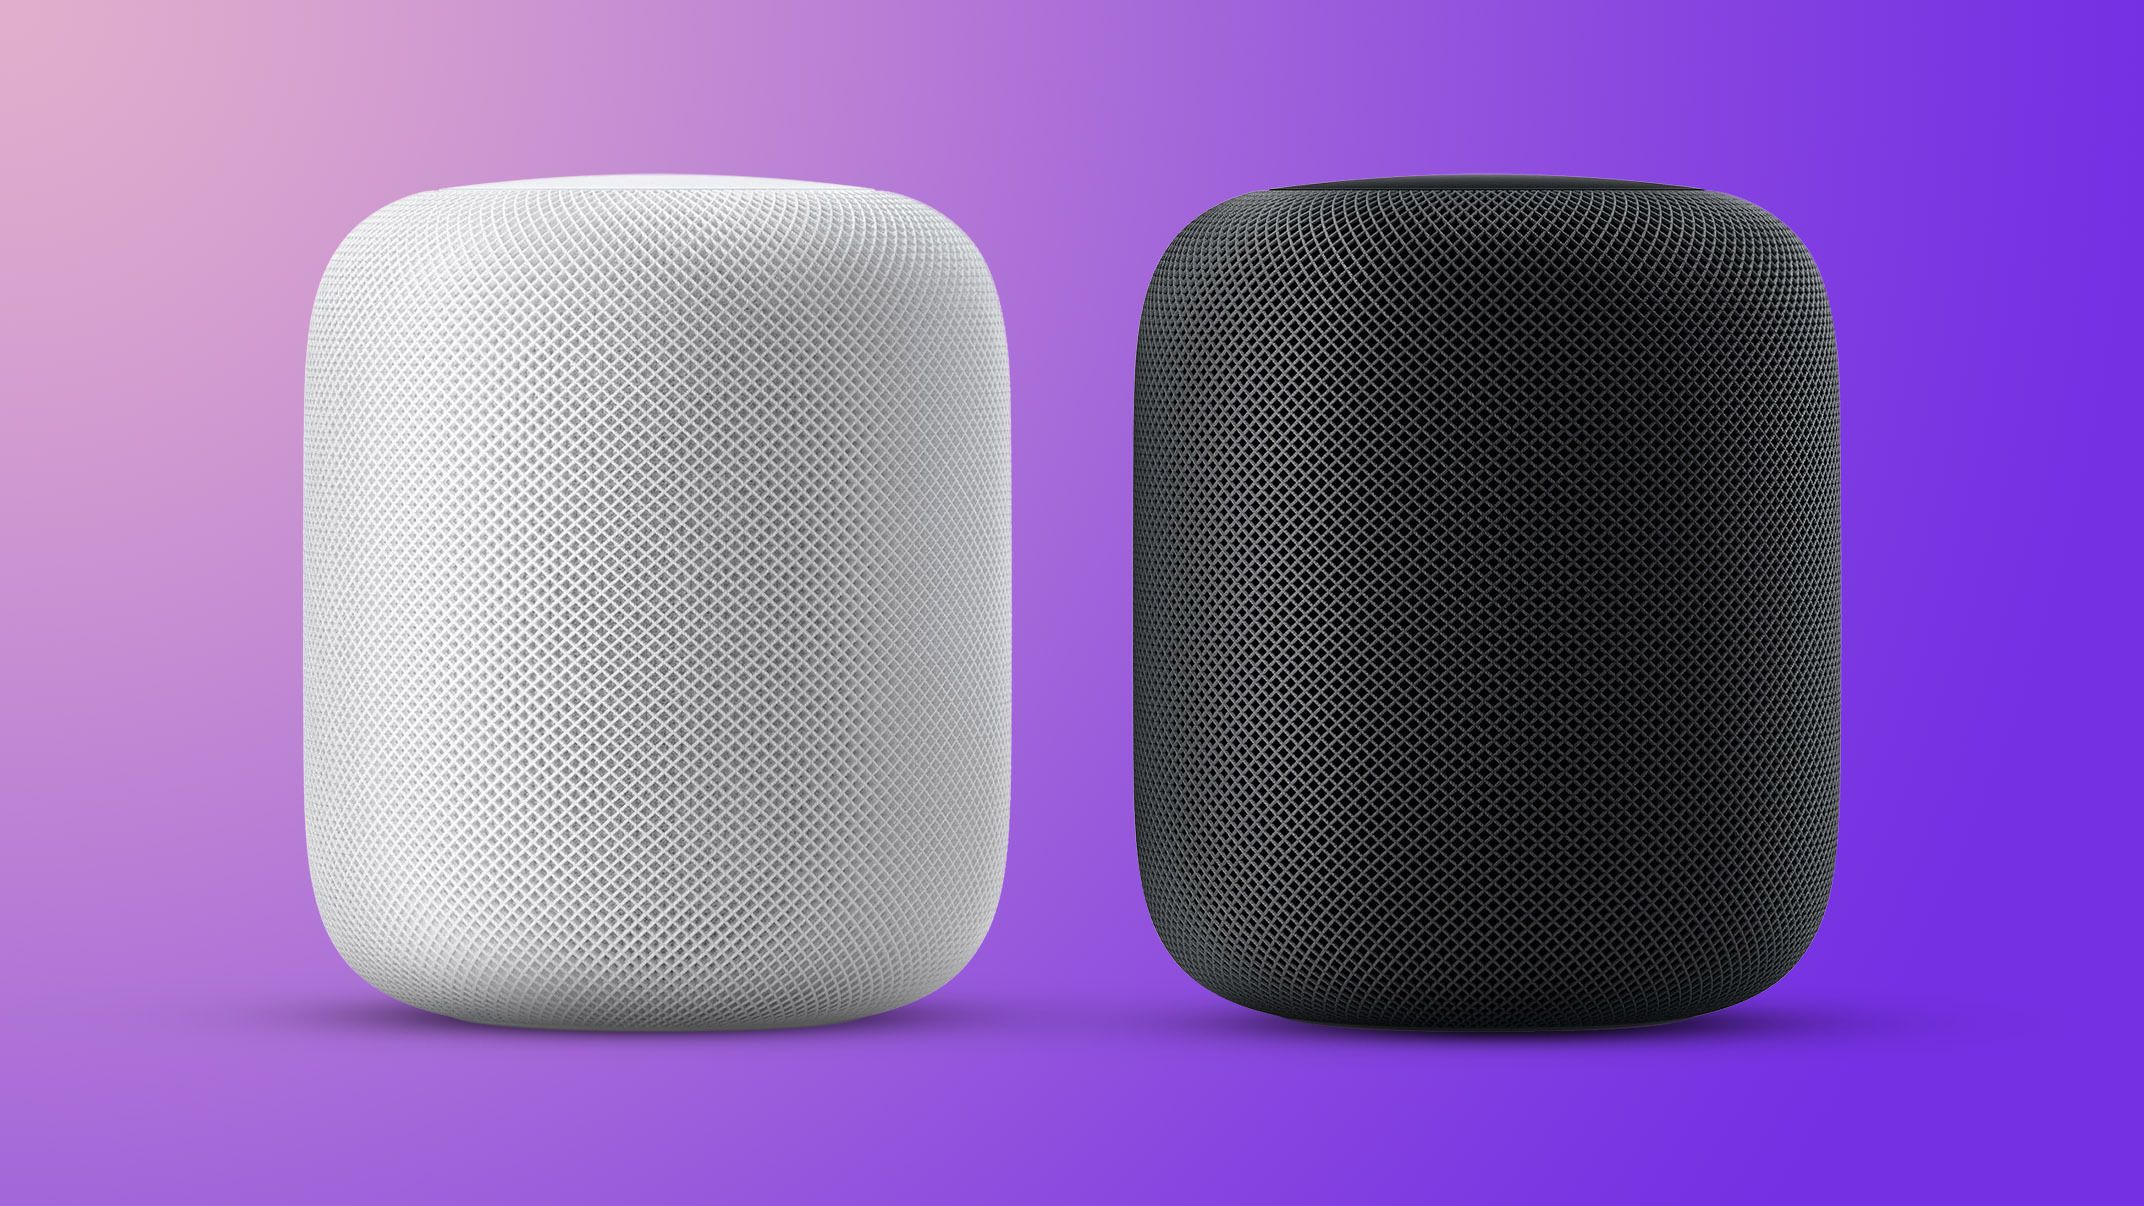 photo of HomePod Will Support Spatial Audio for Apple Music, But Not Lossless Audio image